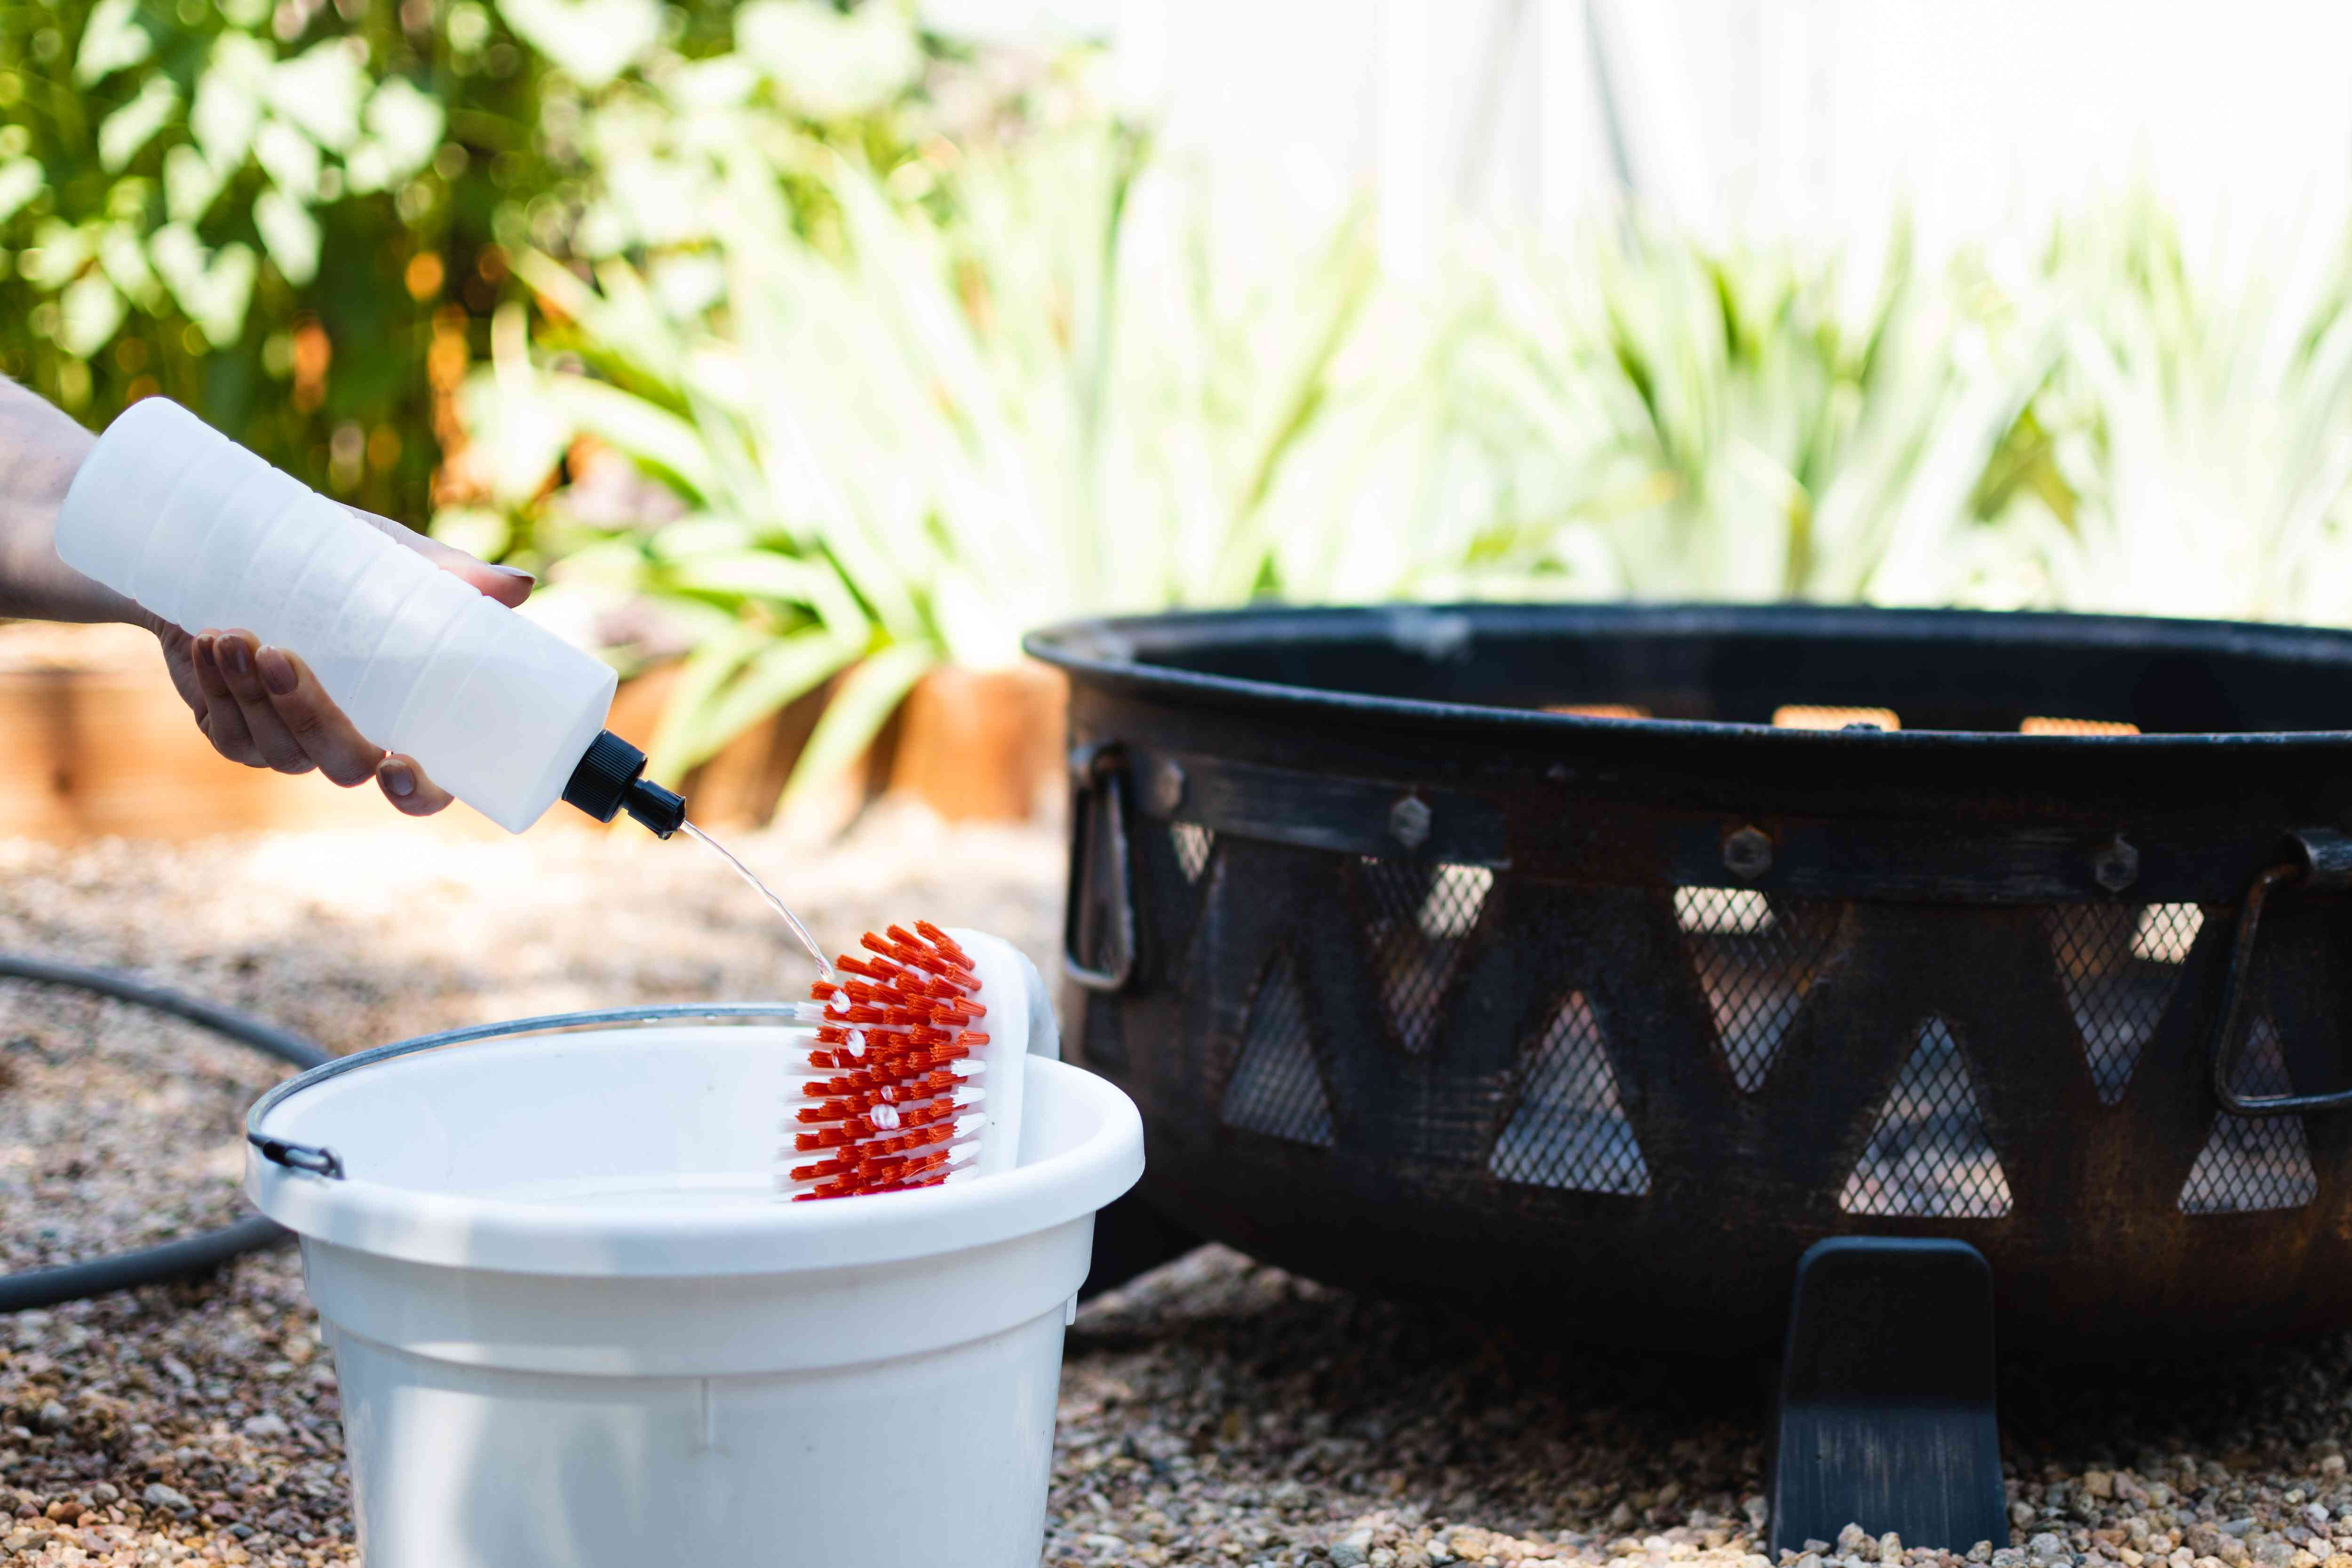 Dishwashing liquid and water poured in white bucket with red scrub brush next to metal fire pit